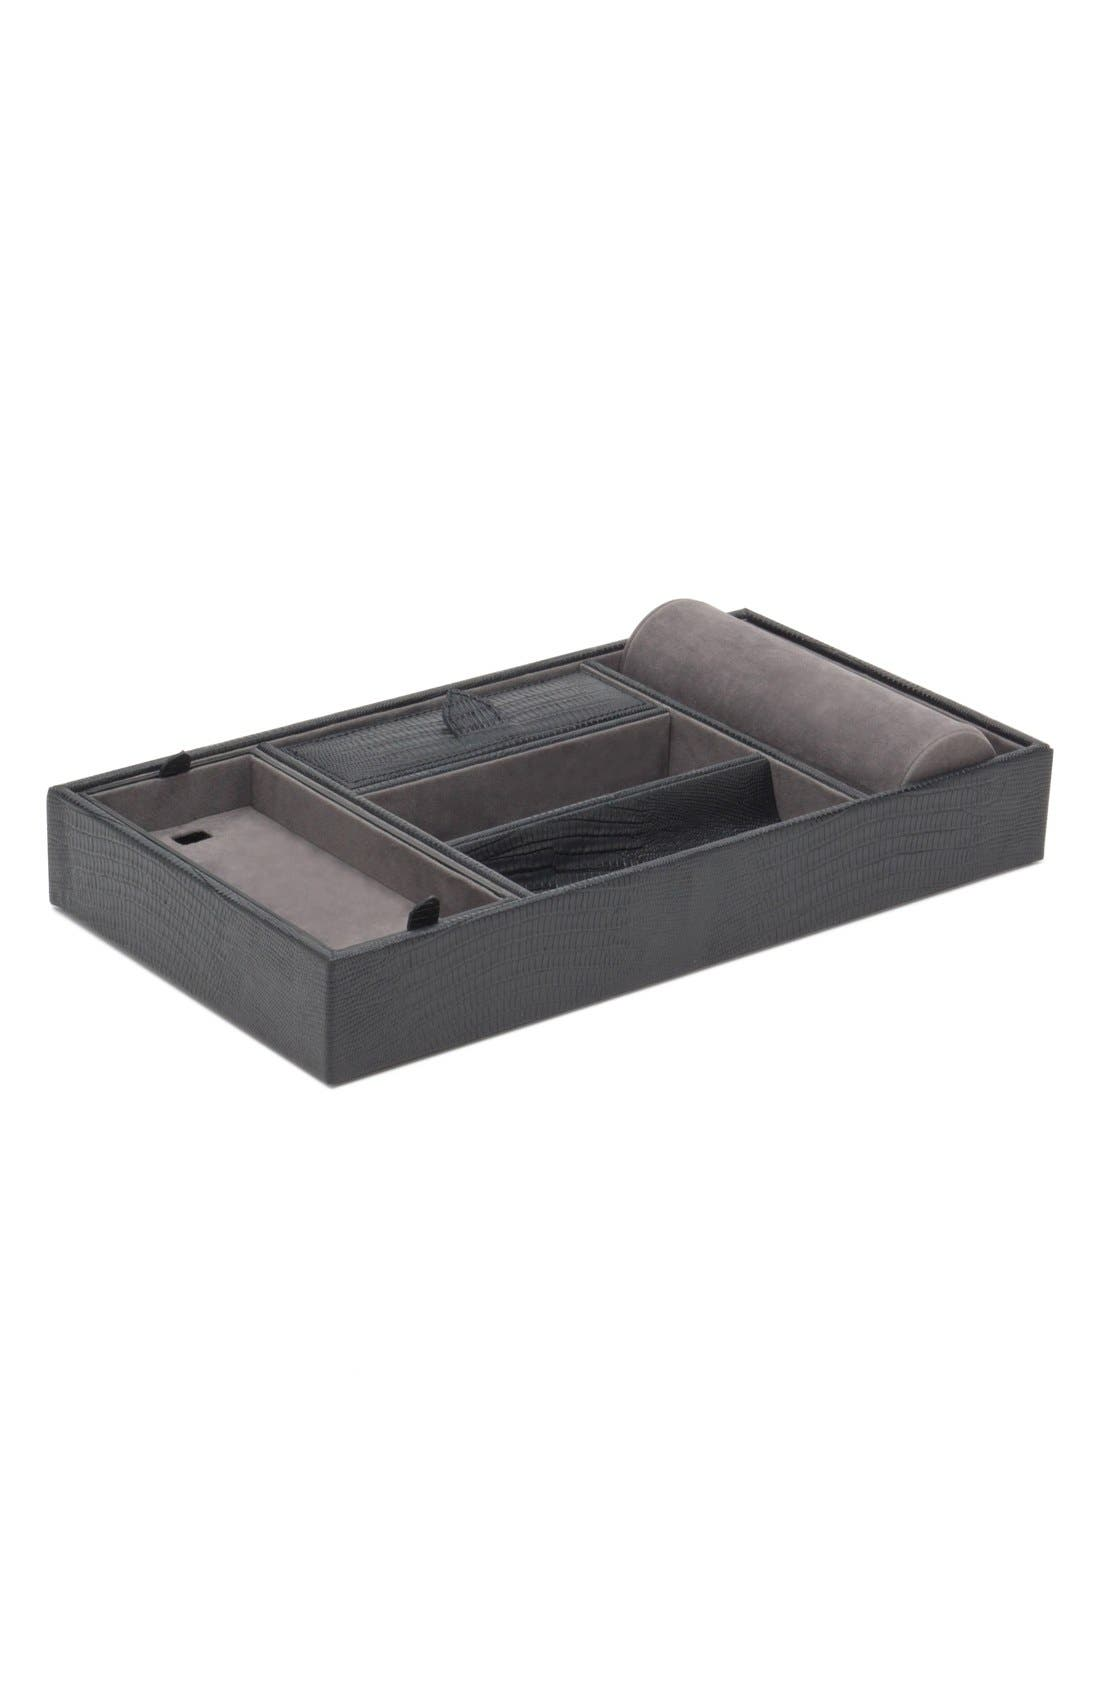 Blake Valet Tray,                             Main thumbnail 1, color,                             001